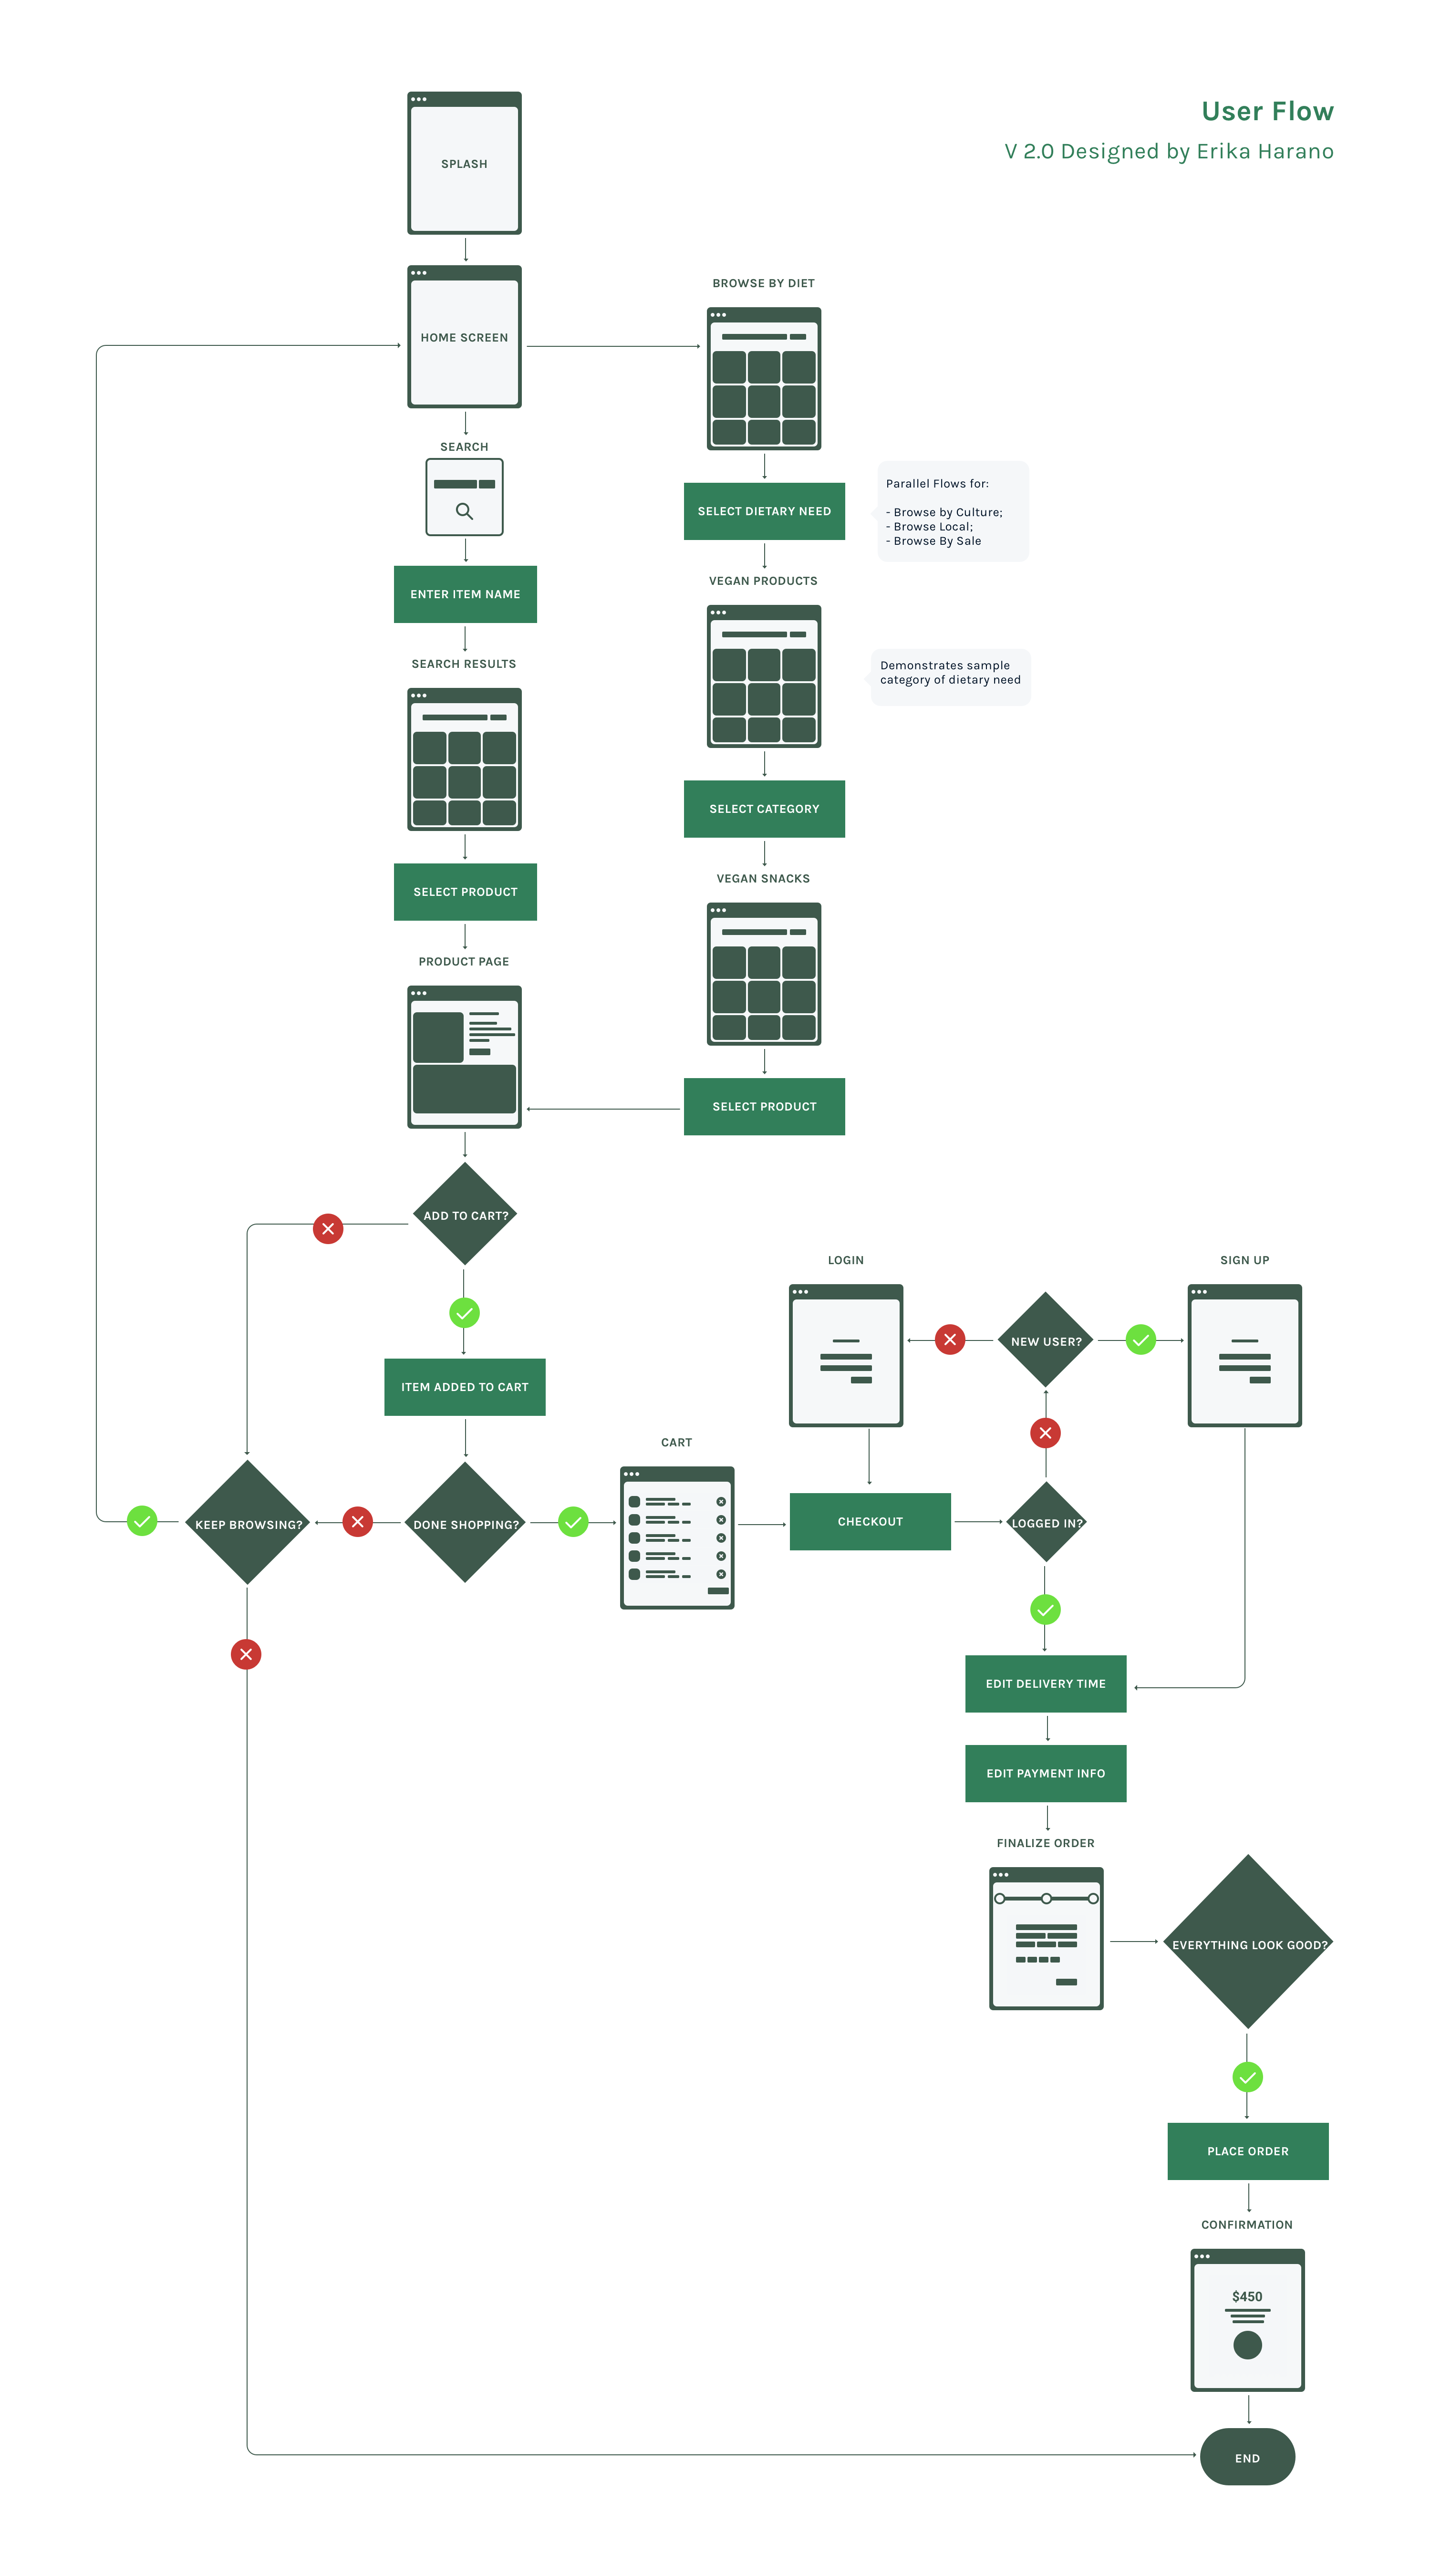 Task flow diagram showing a sample pathway a person might take on the app in order to purchase groceries.